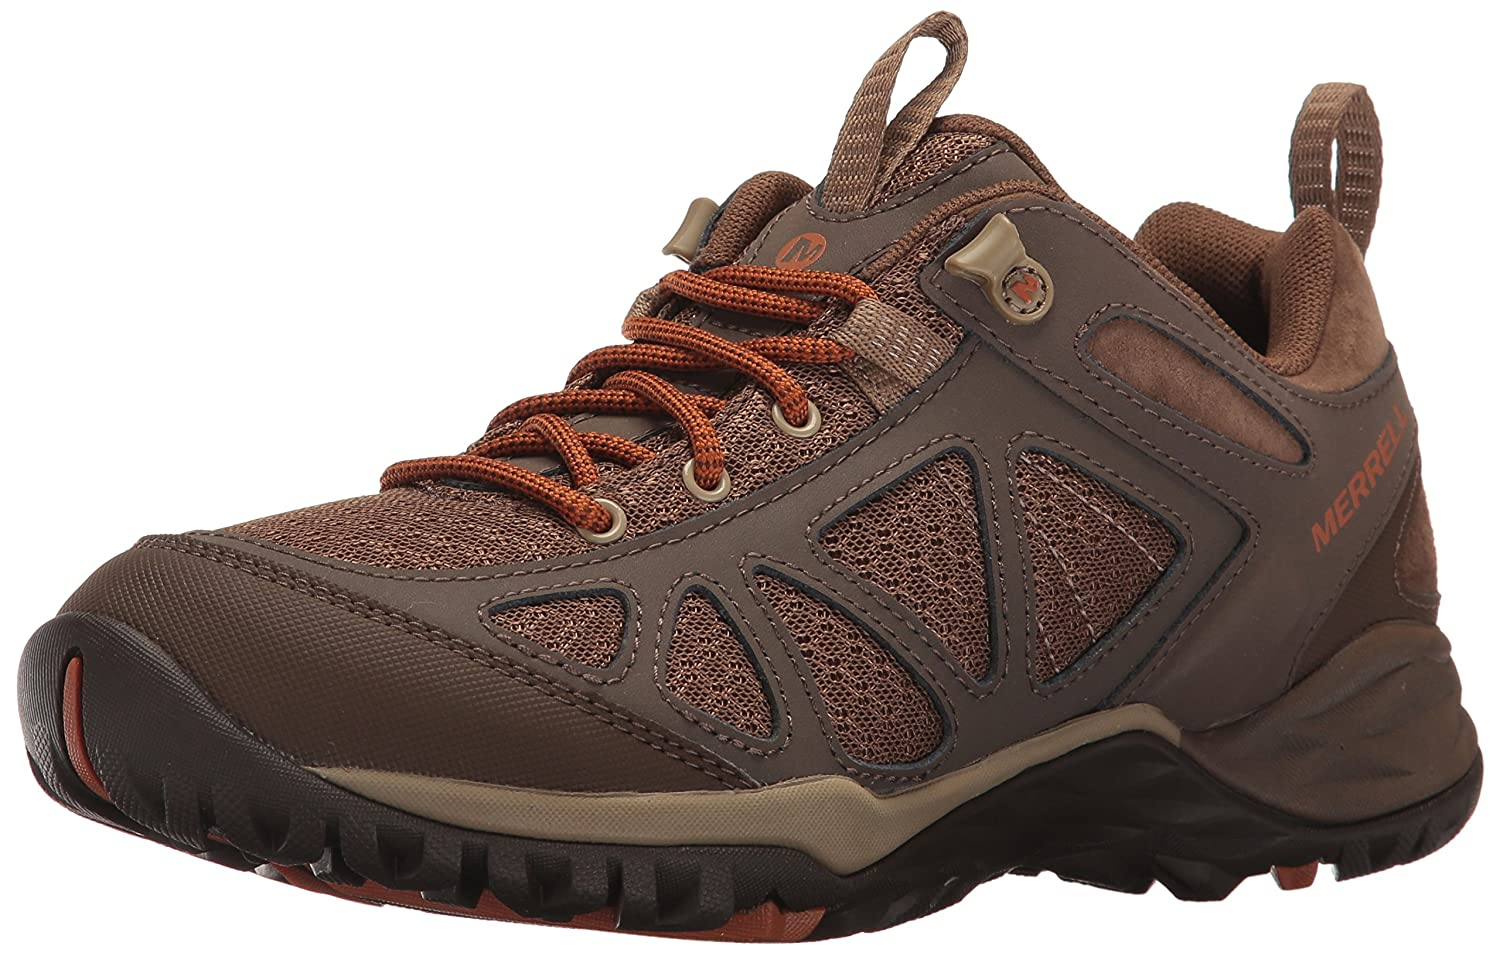 Merrell Women's Siren Sport Q2 Hiking Shoe B01HFRYLF0 11 W US|Slate Black